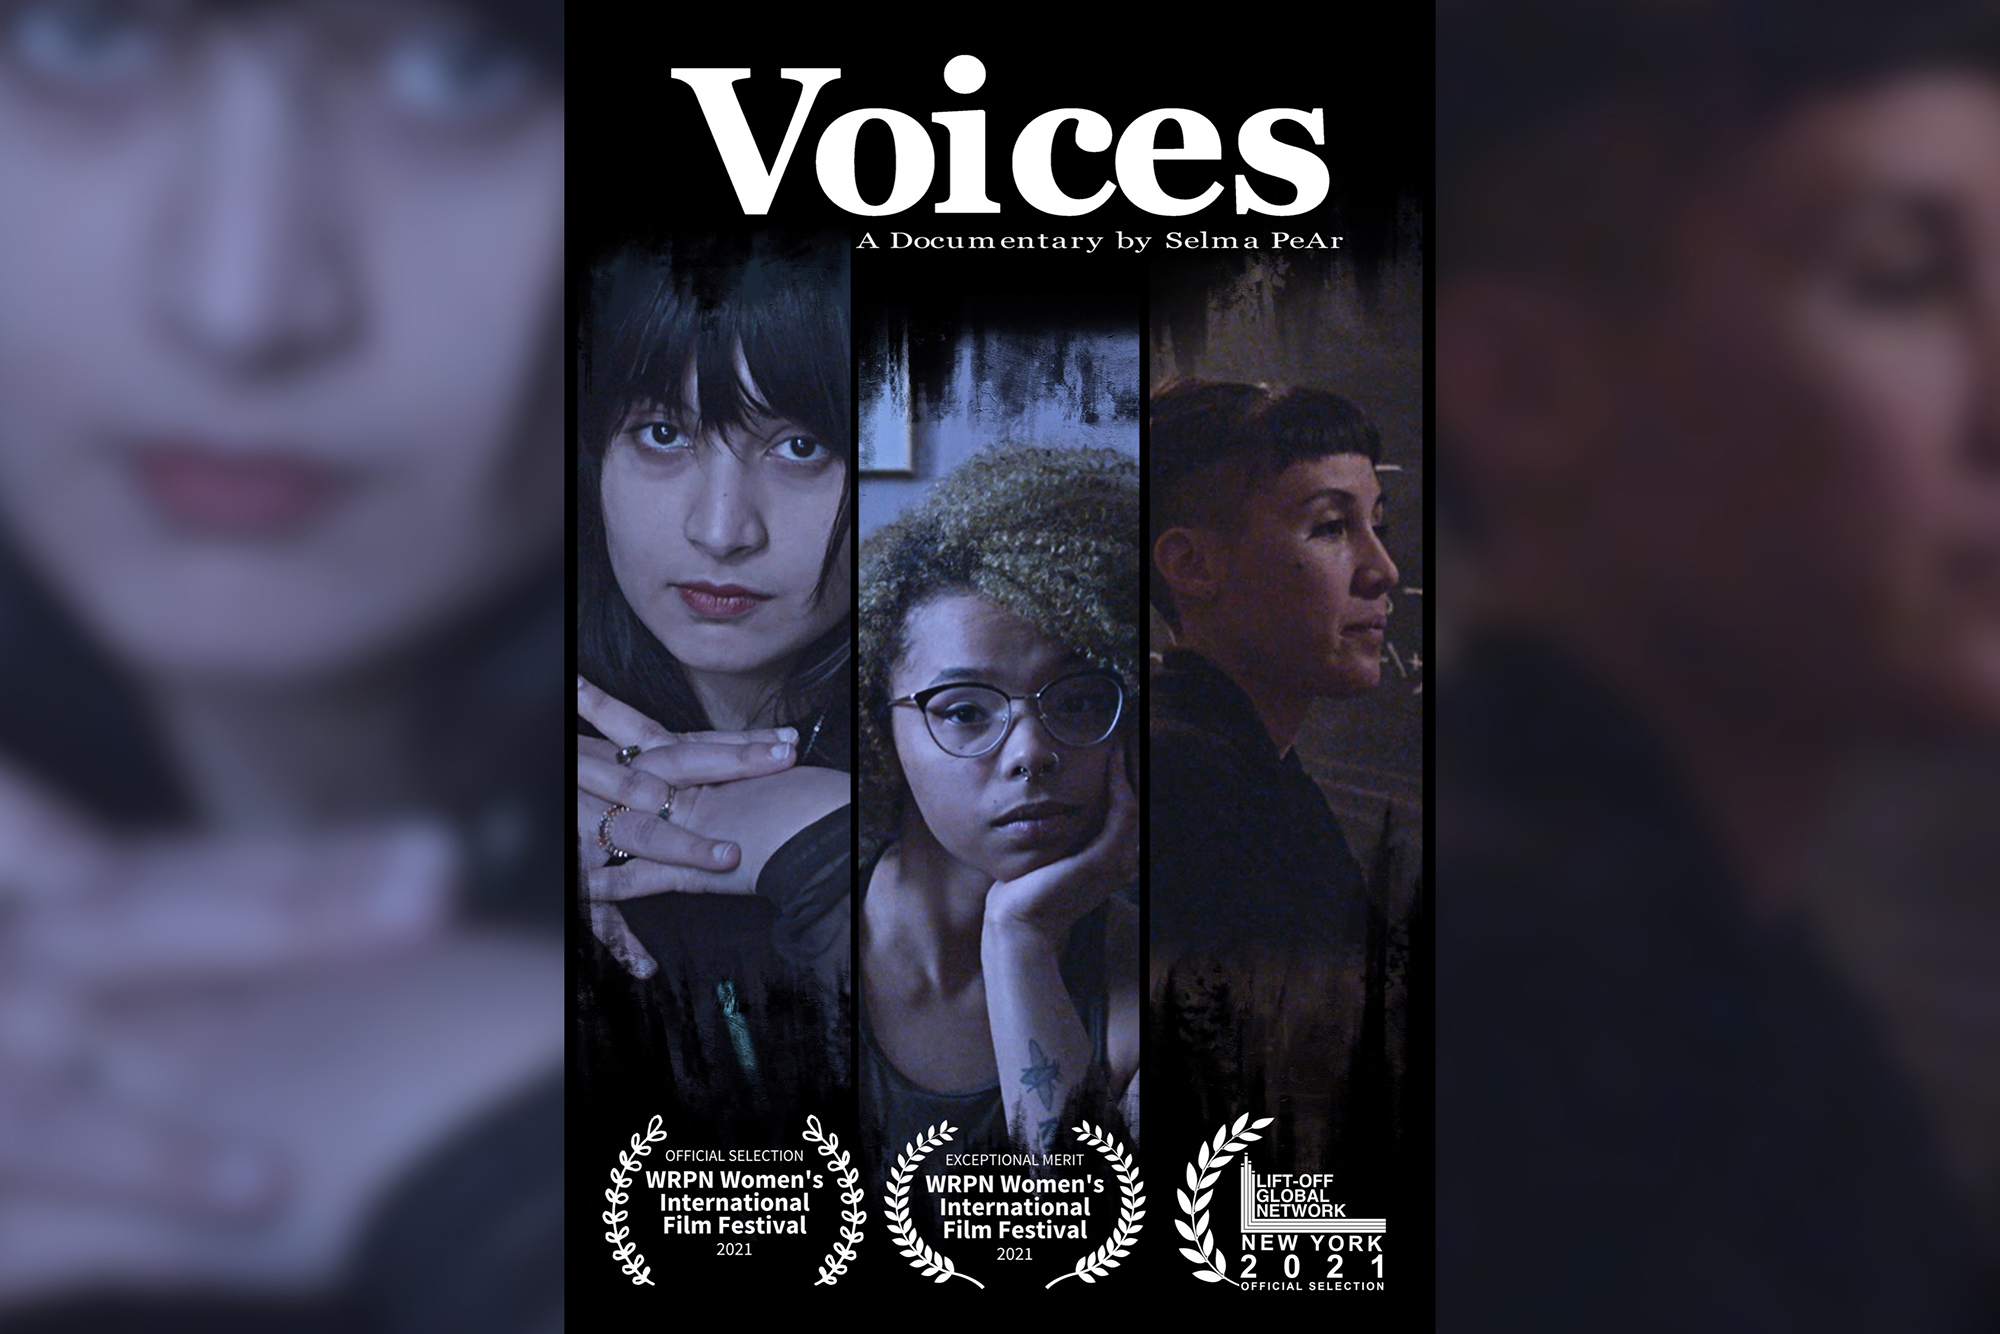 A film poster for Voices, with a triptych of three woman protagonists.